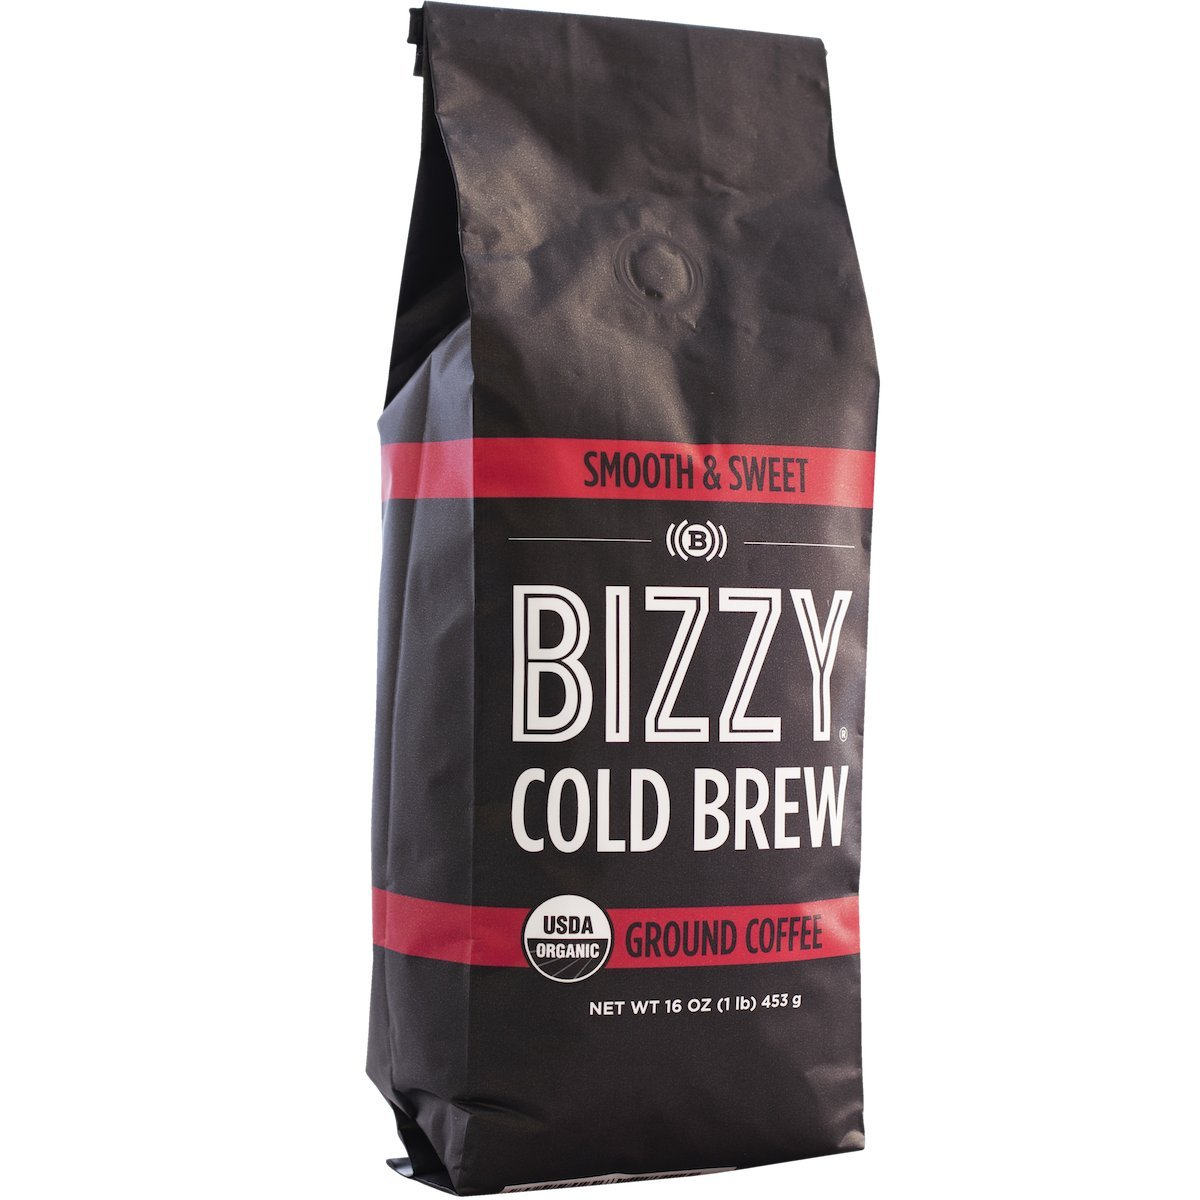 Bizzy Organic Cold Brew Coffee - Smooth & Sweet Blend - Coarse Ground Coffee - 1 Pound by Bizzy (Image #3)